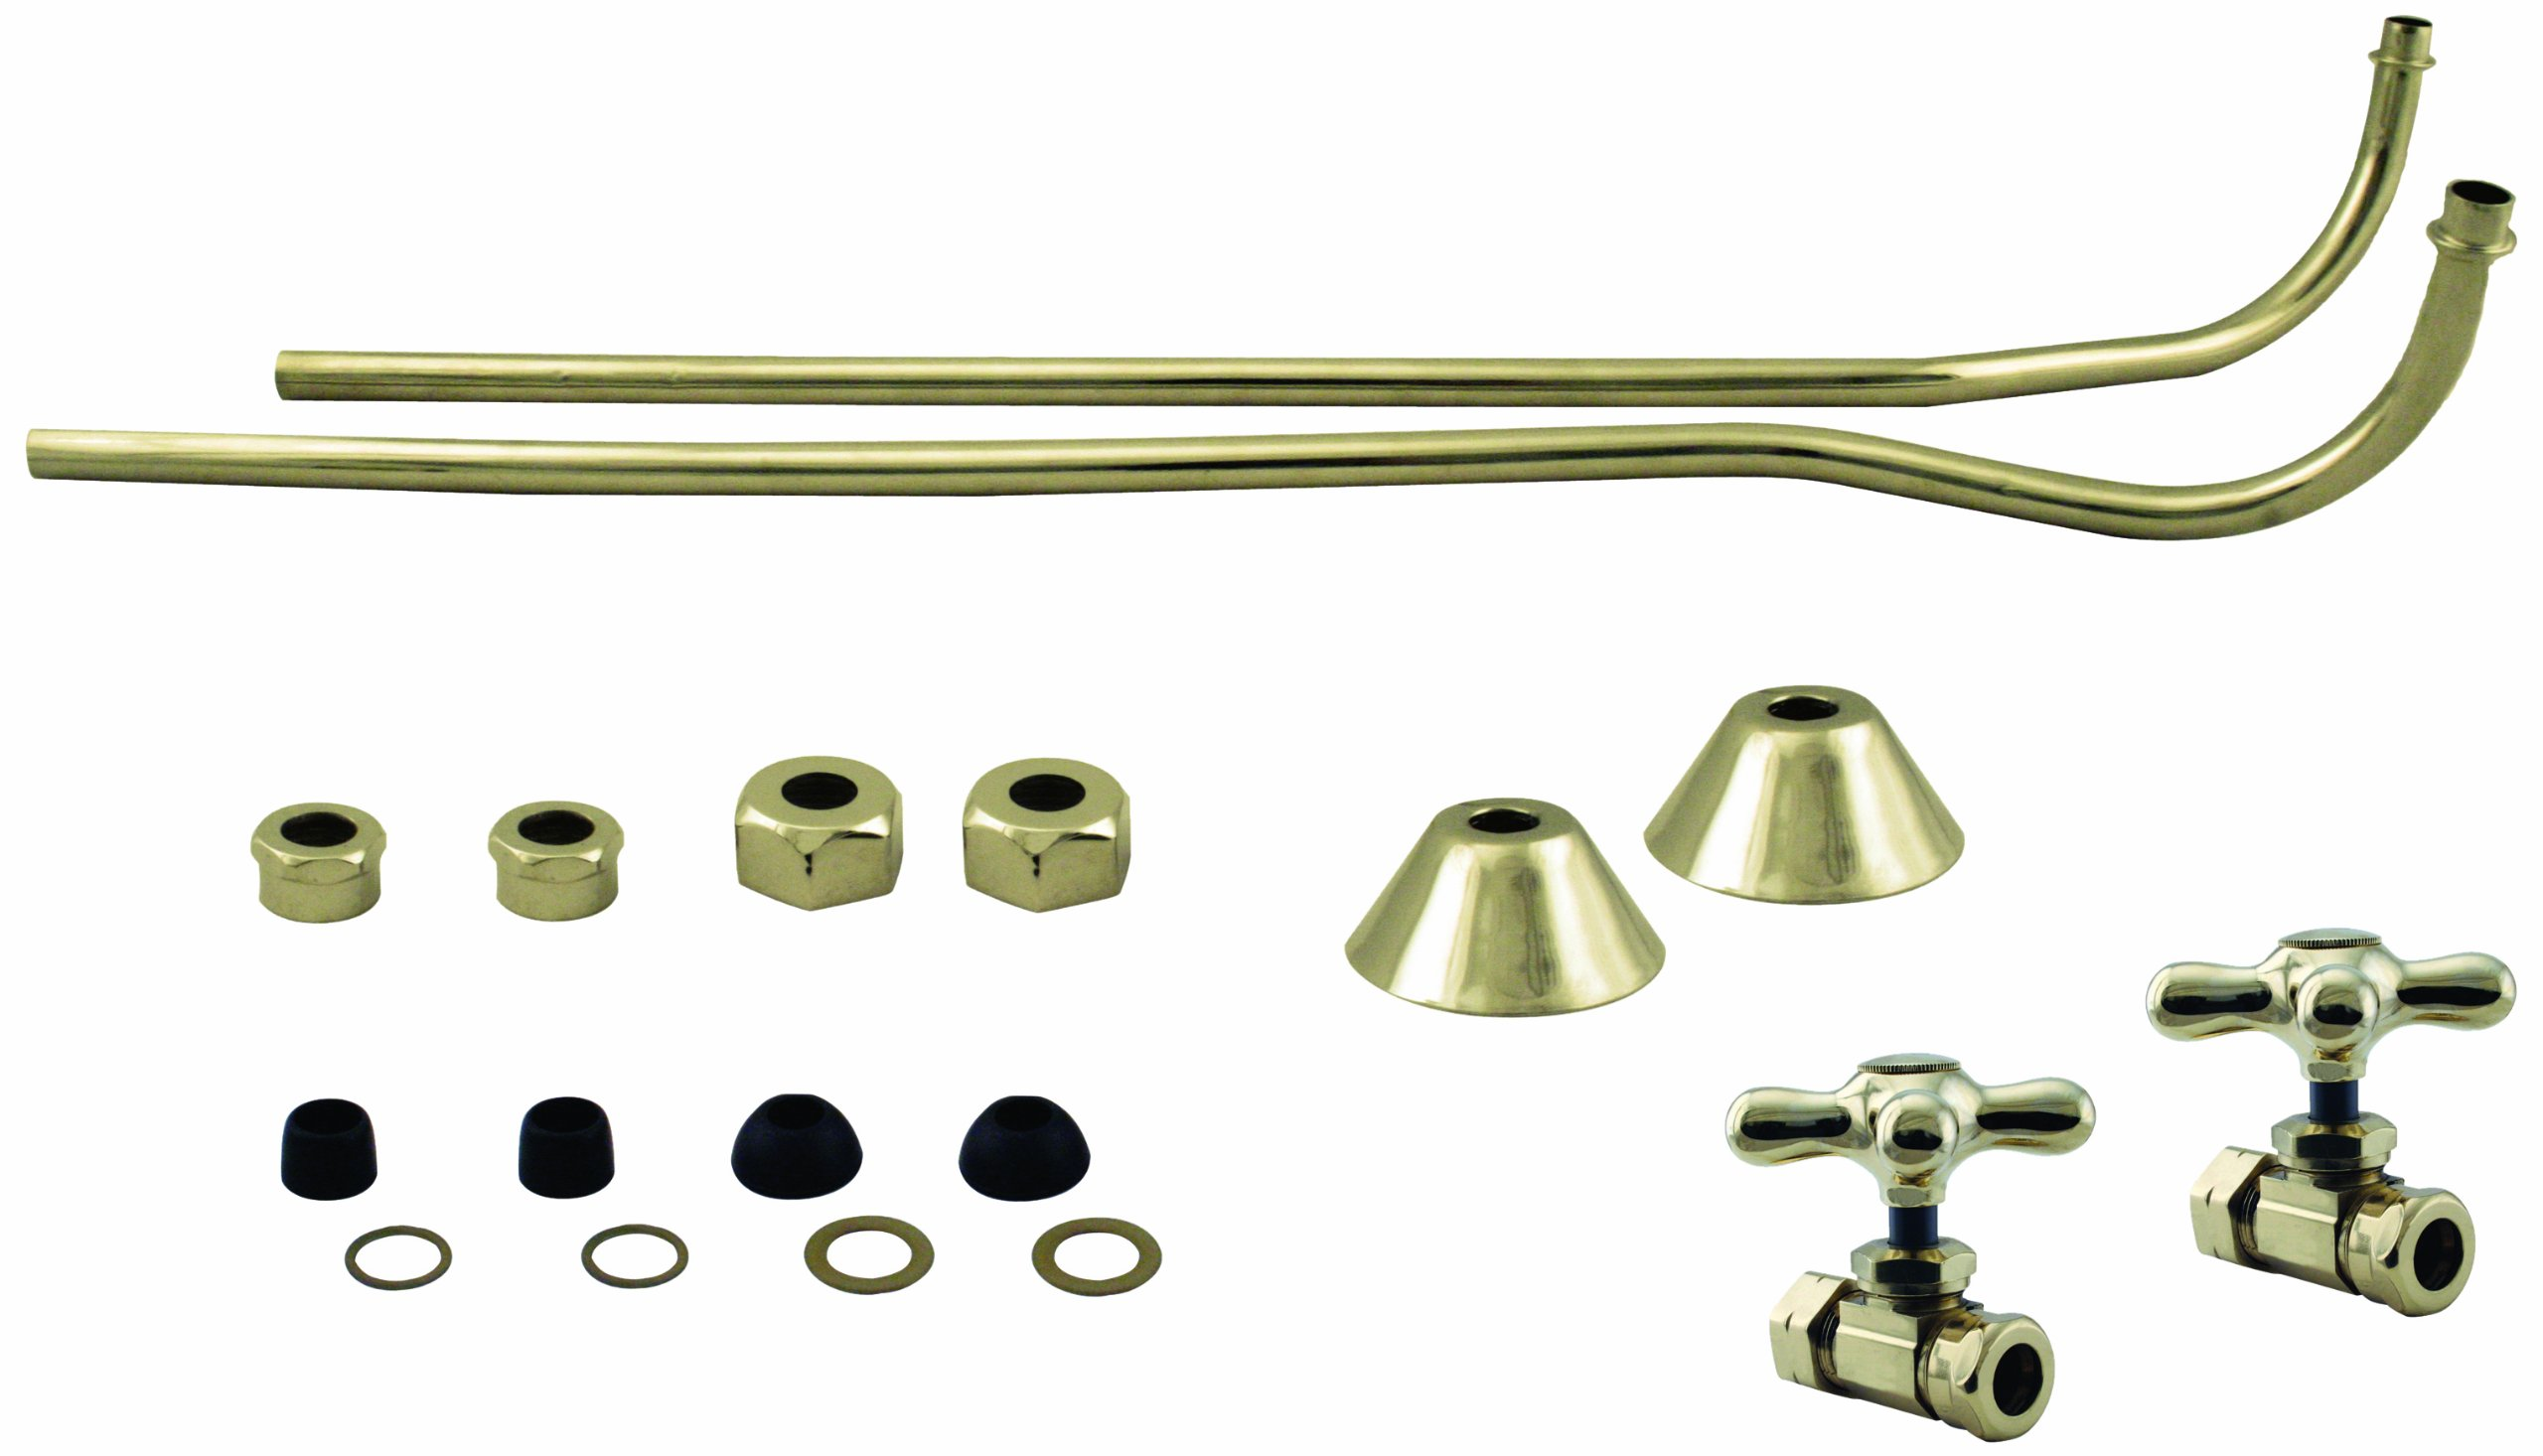 Westbrass Double Offset Bath Supply Lines with 1/2'' IPS Valves and Cross Handles, Polished Brass, D136-108X-01 by Westbrass